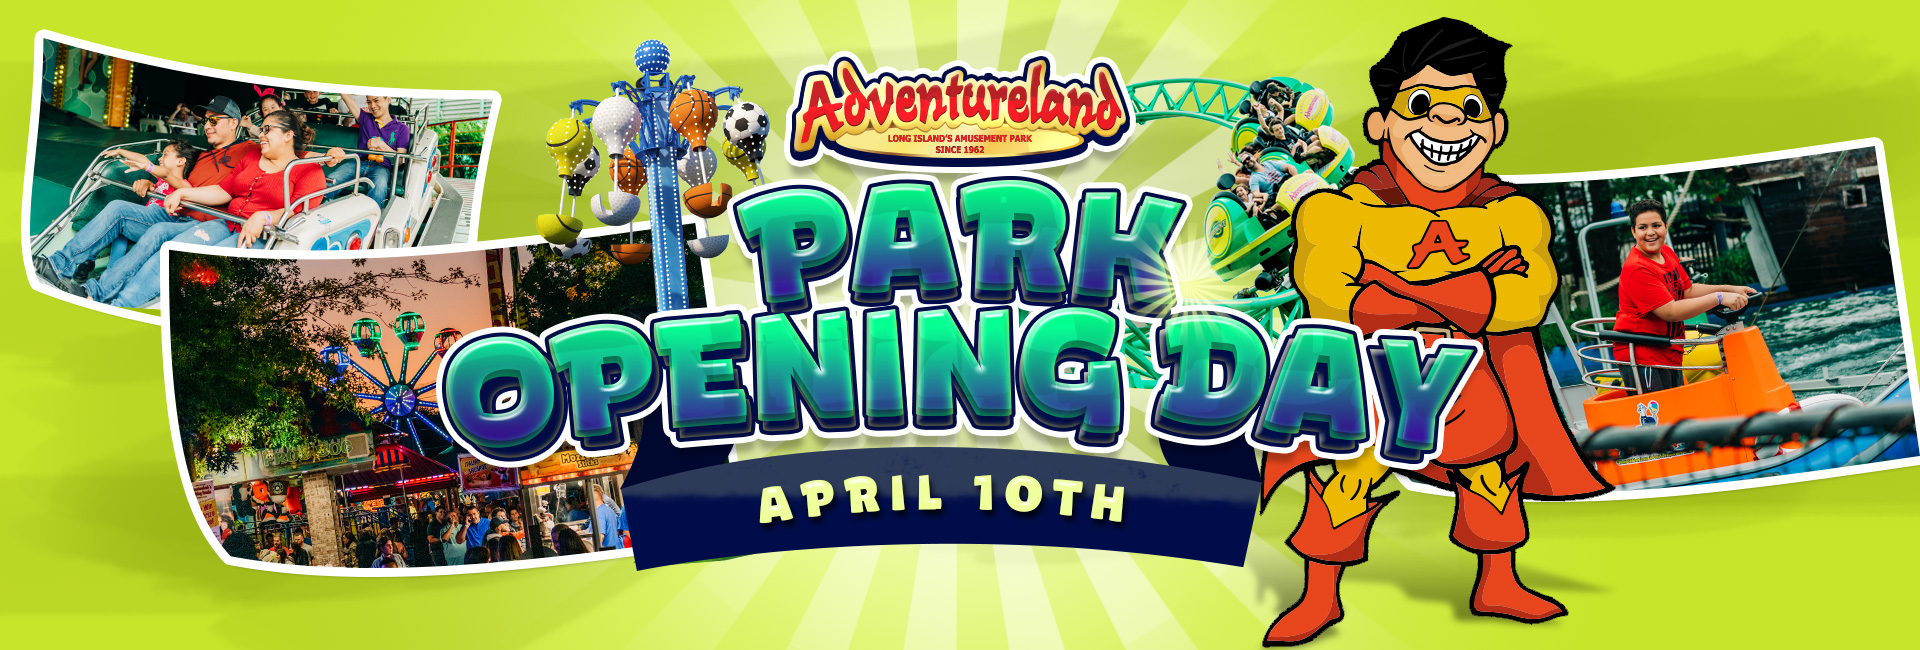 Park Opening Day April 10th